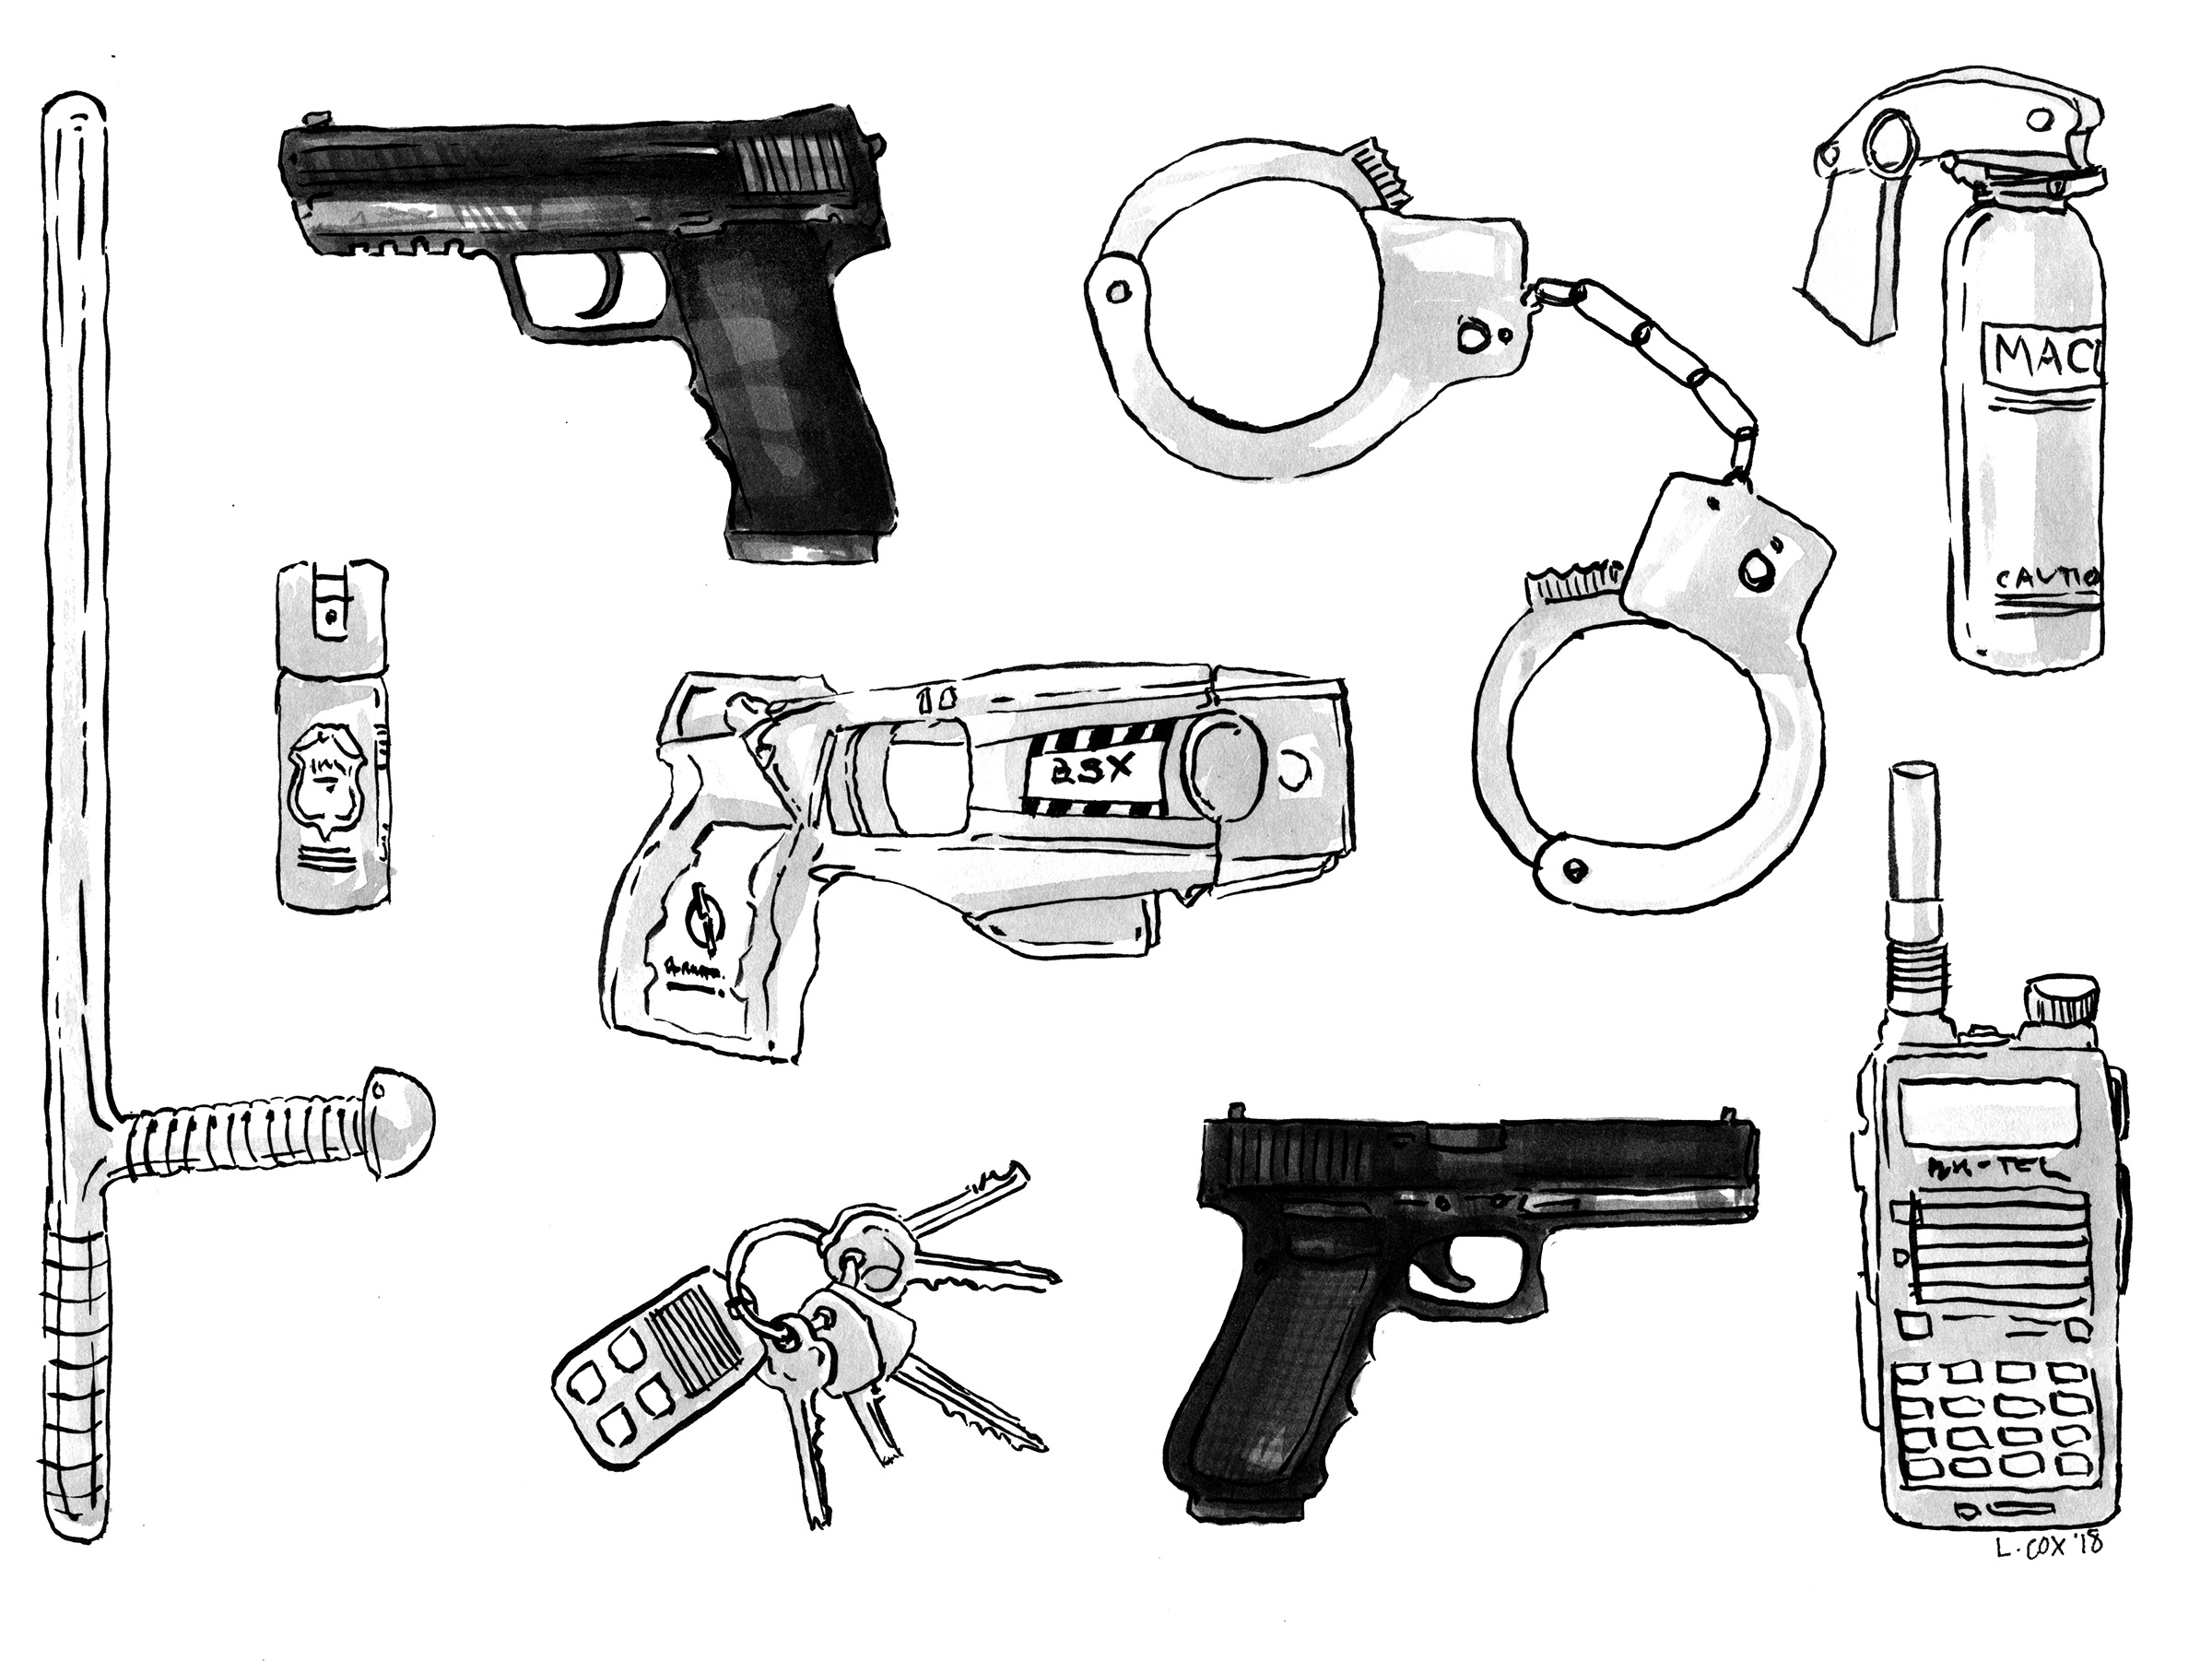 Police Tools for WBEZ Chicago/National Public Radio, Ink 2018